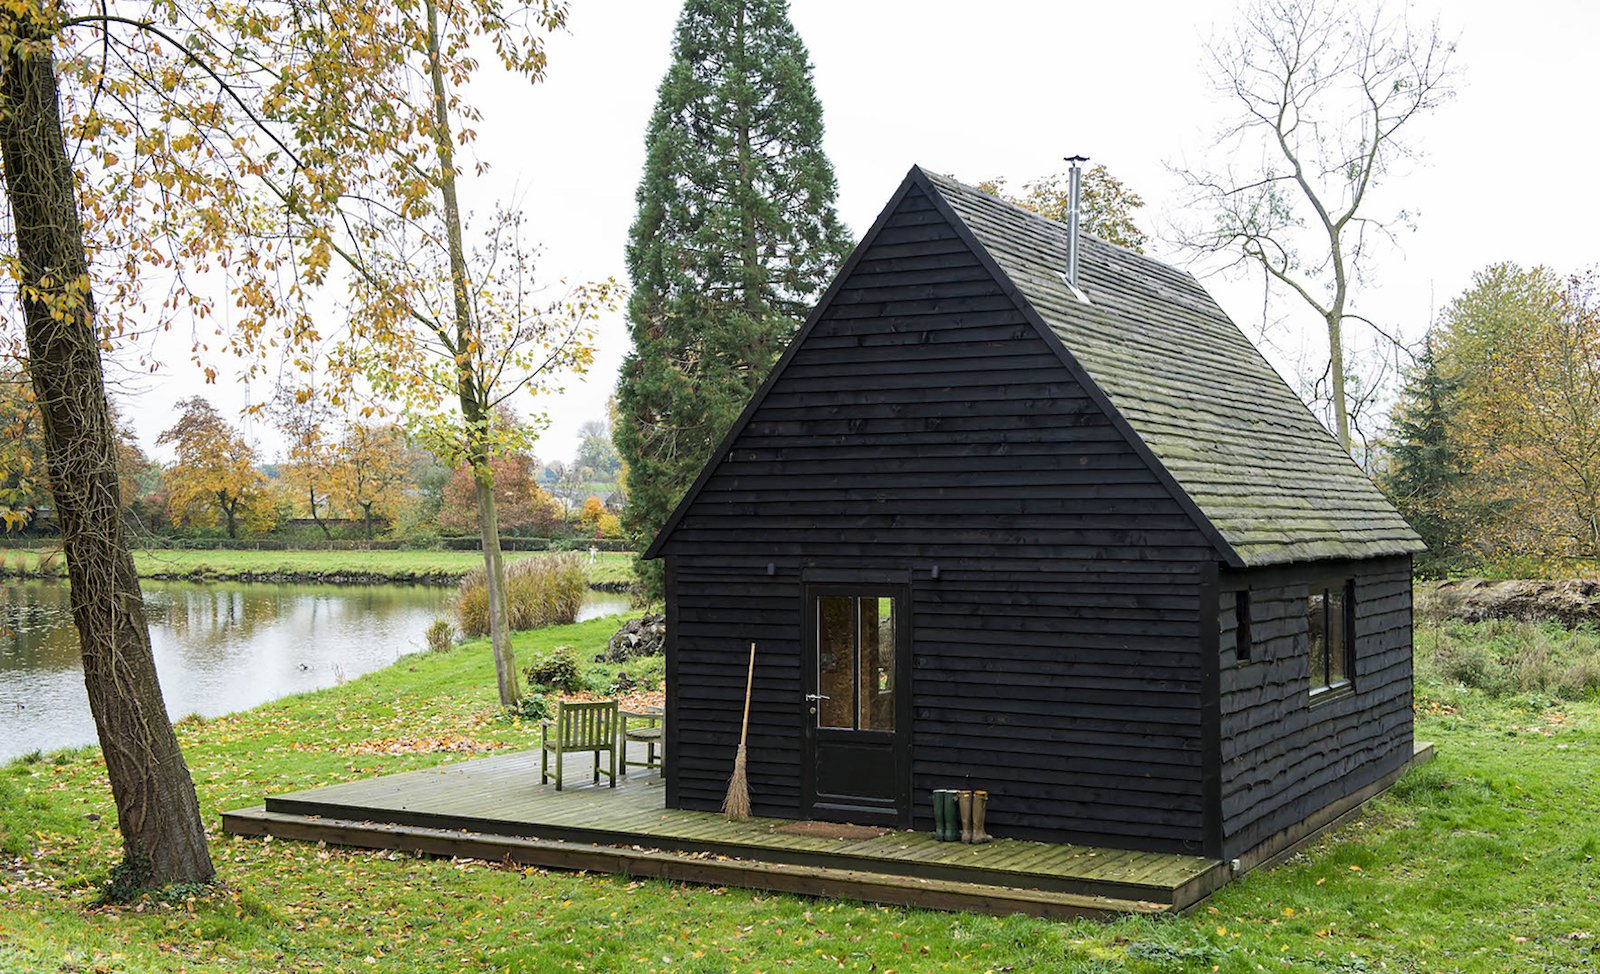 Exterior, Cabin Building Type, and Wood Siding Material London-based practice De Rosee Sa's self-built lakeside cabin recaptures the magic of childhood fairytales.   A labor of love, the 377-square-foot Woodland Cabin is a design/build project completed over multiple trips to the lakeside lot in the village of Nouvelles in southern Belgium. The architects built the cabin using locally-sourced, storm-felled timber to deepen their understanding of materials and construction.   By taking construction into their own hands and using locally-sourced materials, the team kept within the relatively tight budget of £25,000 ($32,872).    Simple yet elegant, De Rosee Sa's self-described  Photo 4 of 11 in Dwell's Top 10 Cabins of 2017 from Built on a Budget, This Belgian Cabin Is Straight Out of a Fairytale